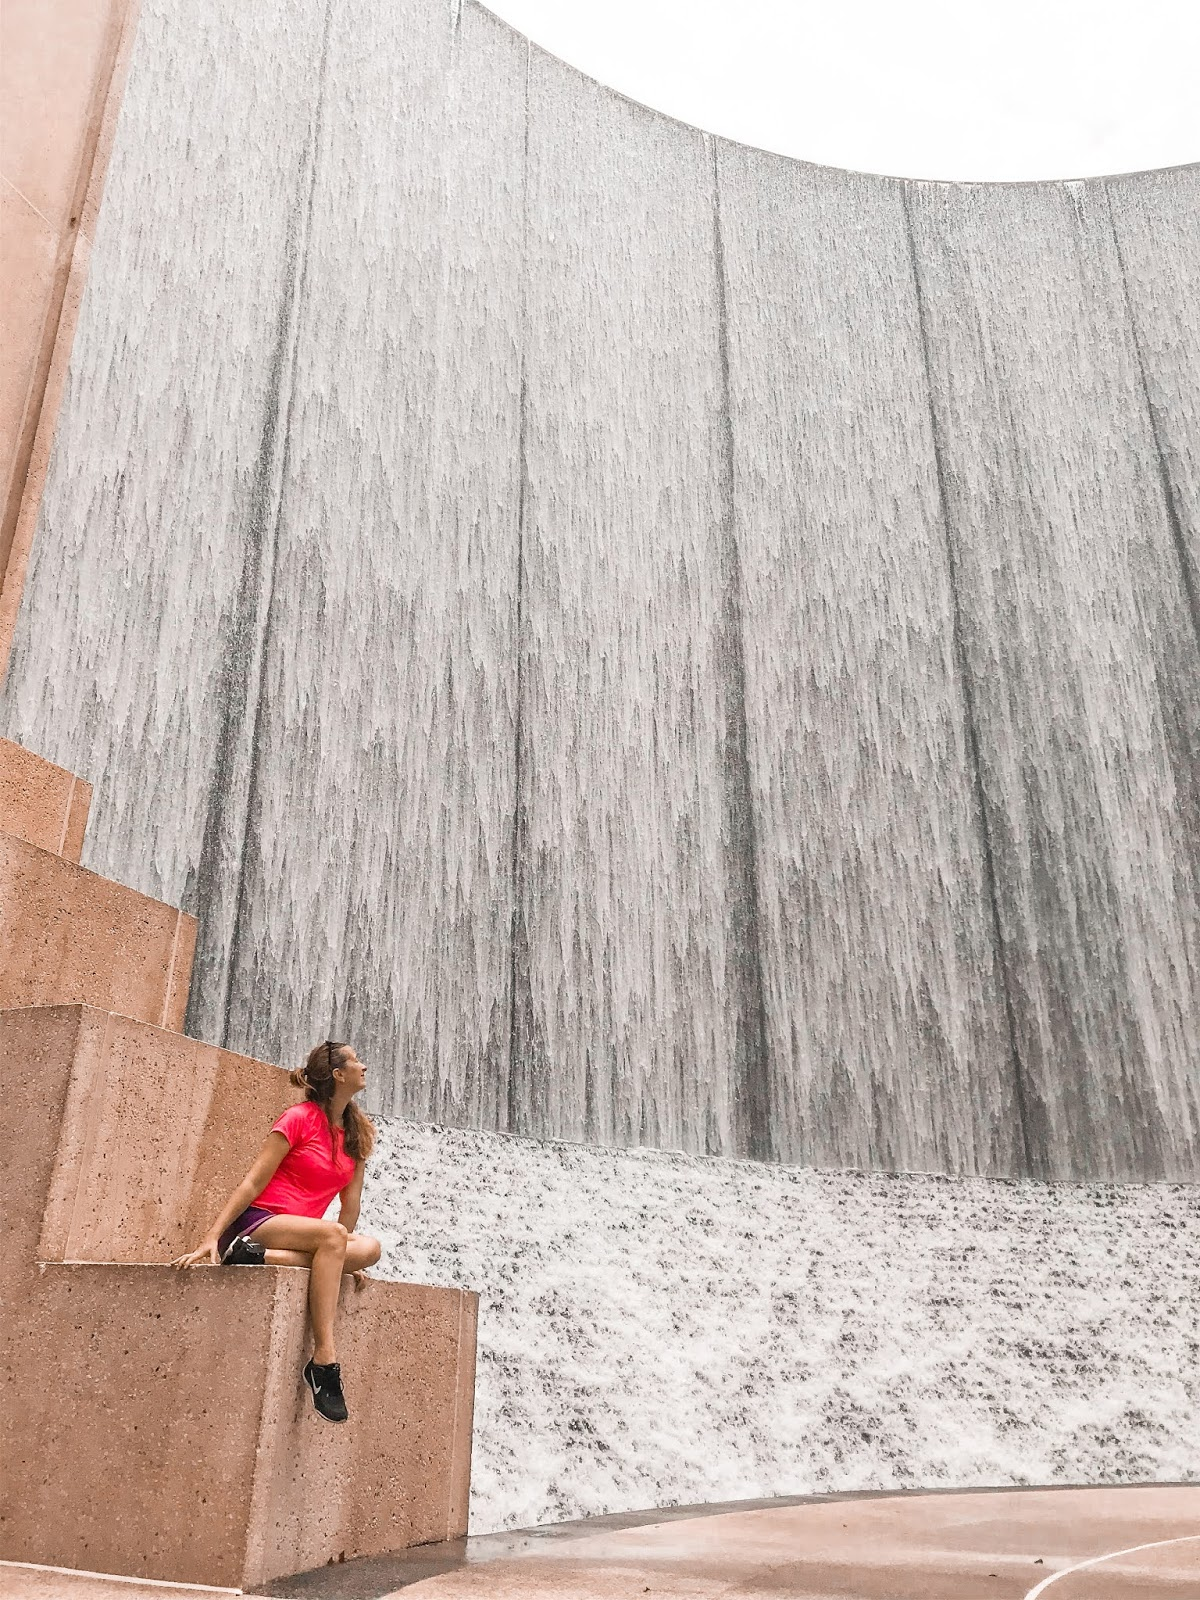 Gerald D. Hines Waterwall Park in Houston